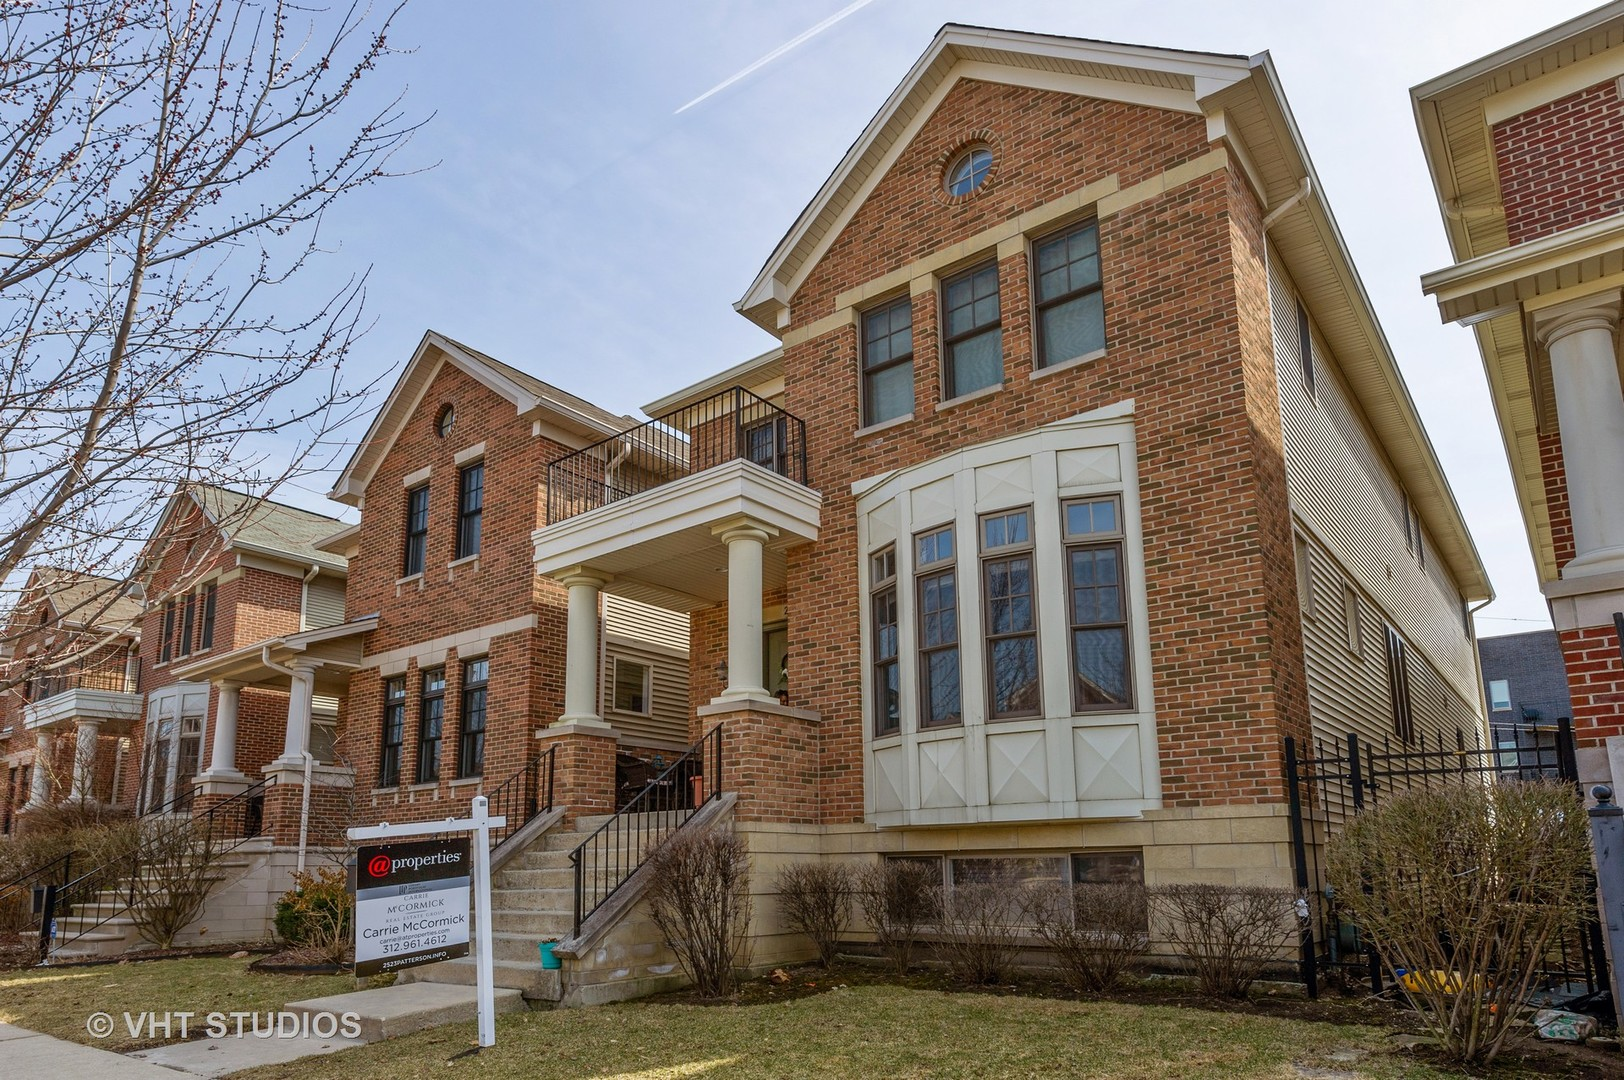 Property for sale at 2523 West Patterson Avenue, CHICAGO,  Il 60618